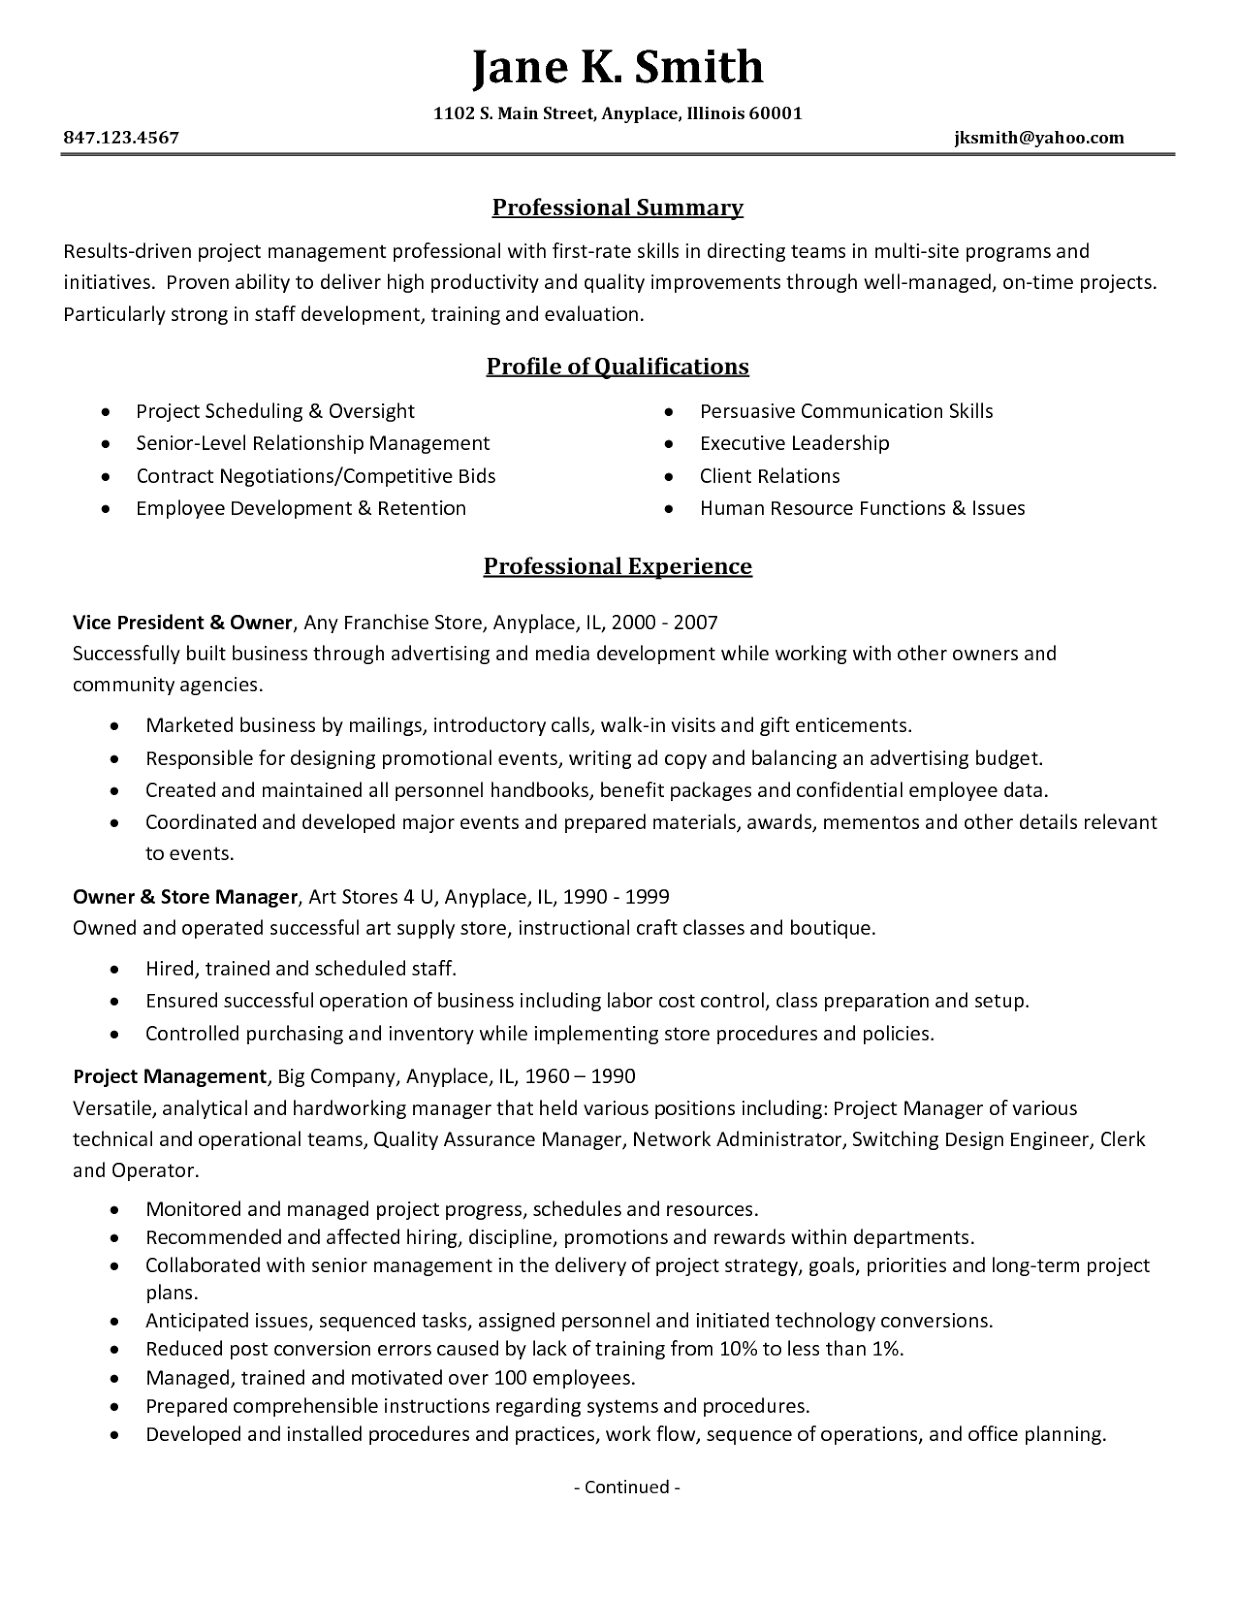 creative audio engineer resume for worked television engineering junior project manager resume urban design guidelines manager - Board Of Directors Resume